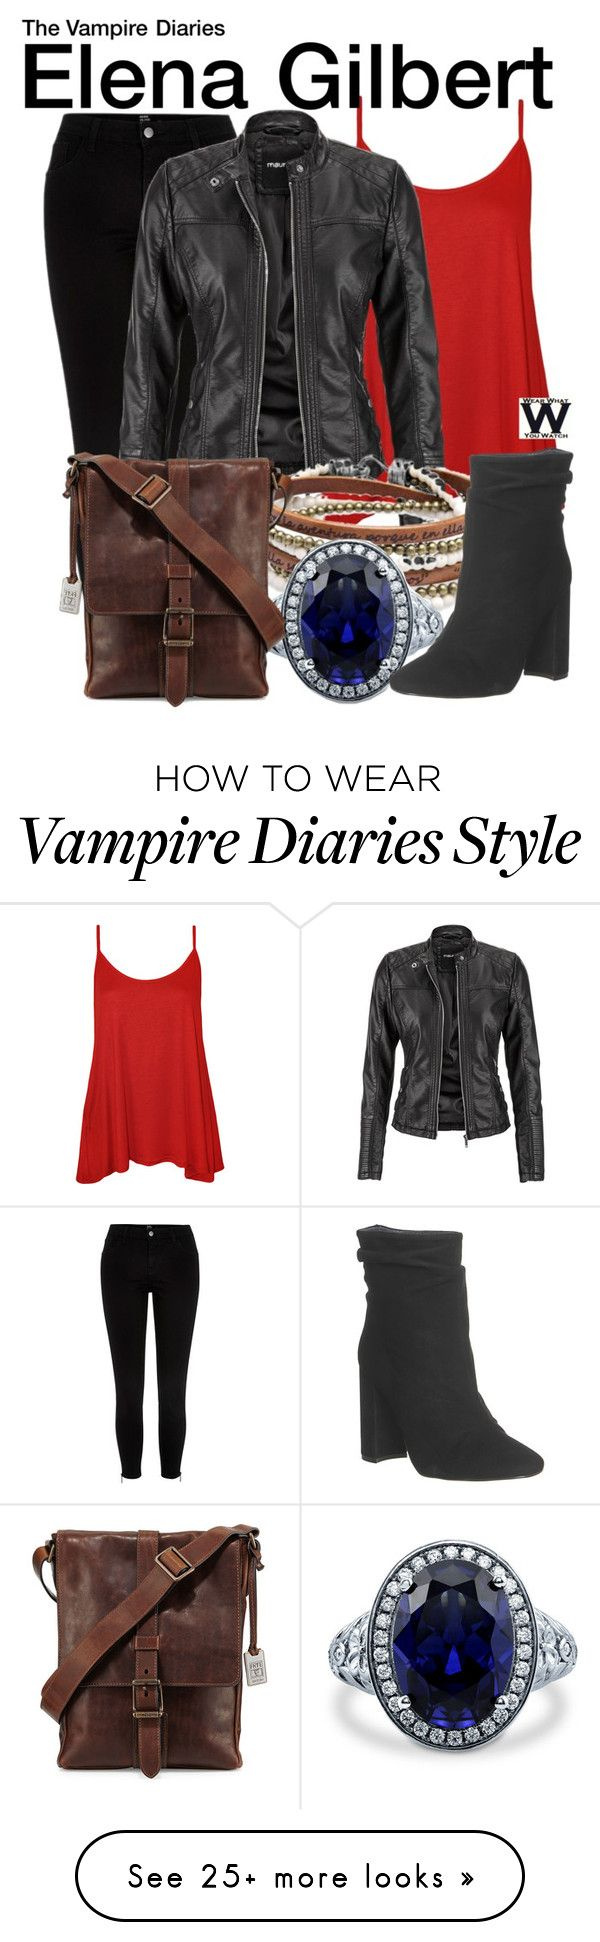 """""""The Vampire Diaries"""" by wearwhatyouwatch on Polyvore featuring River Island, WearAll, maurices, Platadepalo, BERRICLE, Office, Frye, television and wearwhatyouwatch"""